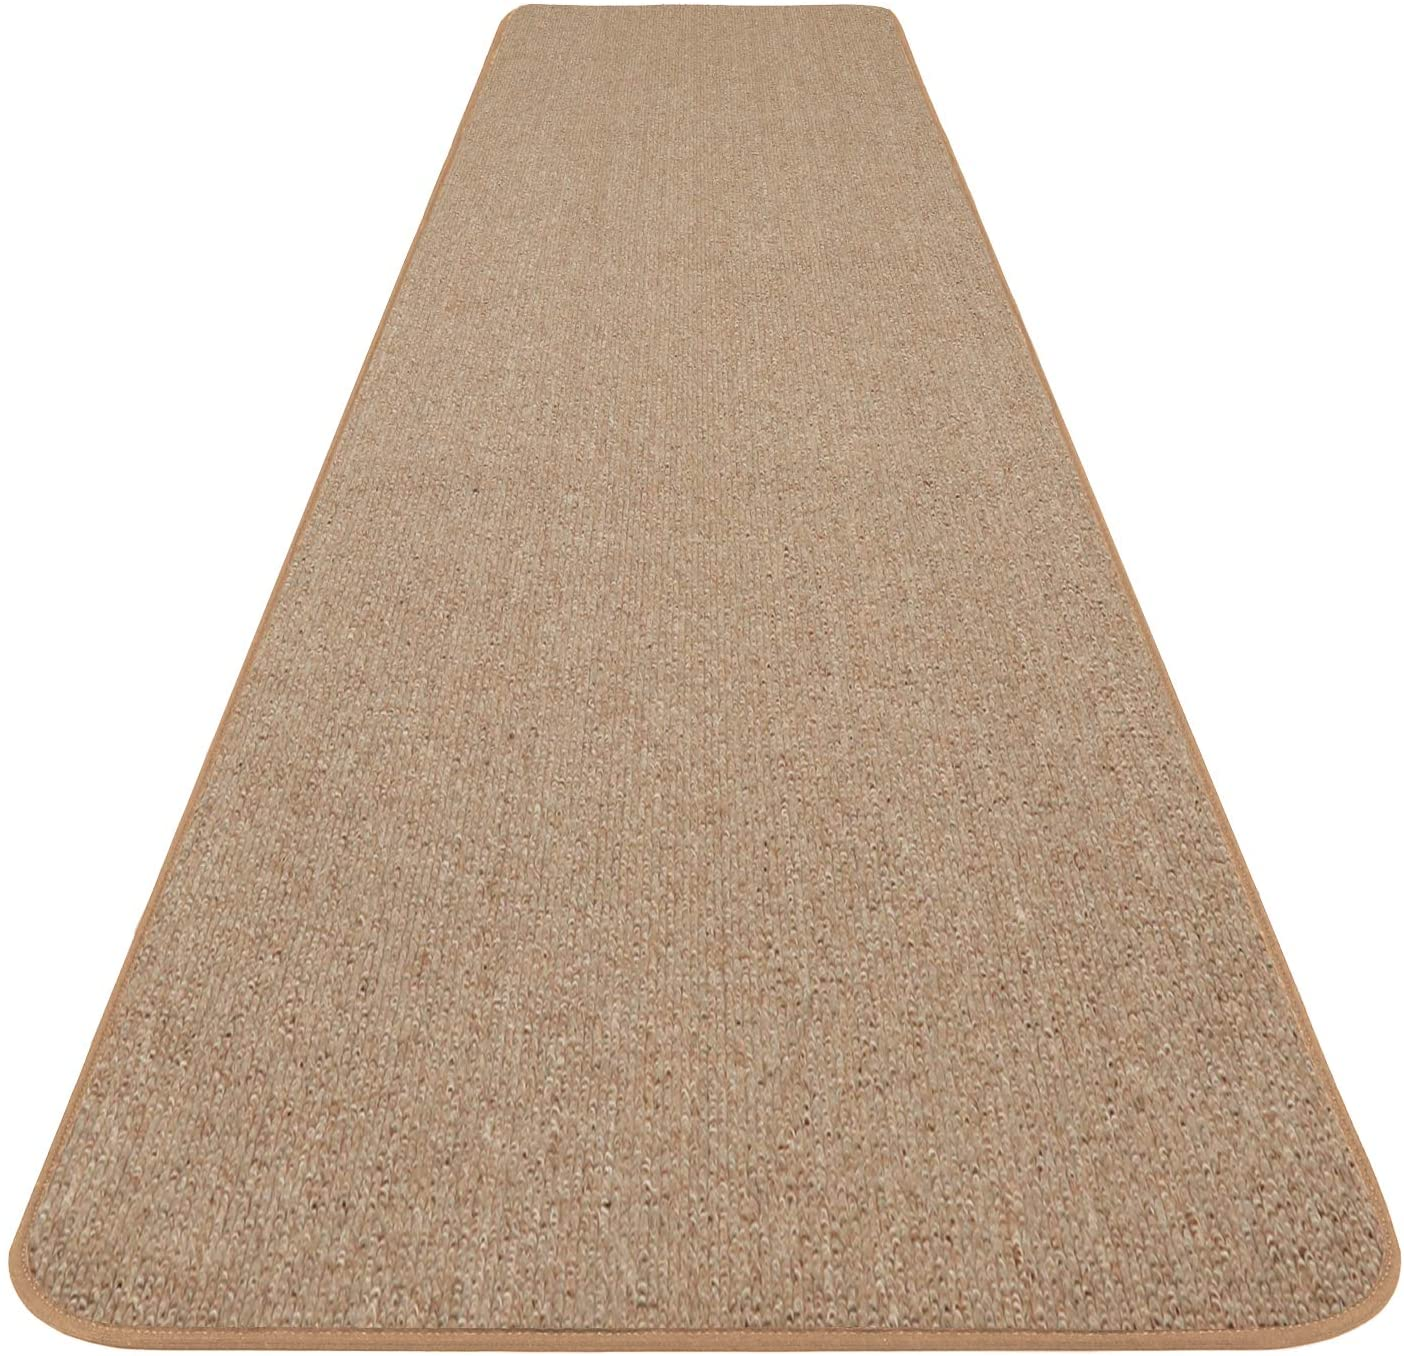 House Home and More Skid-Resistant Now on Ranking TOP14 sale Runner Carpet Pebble Beige -